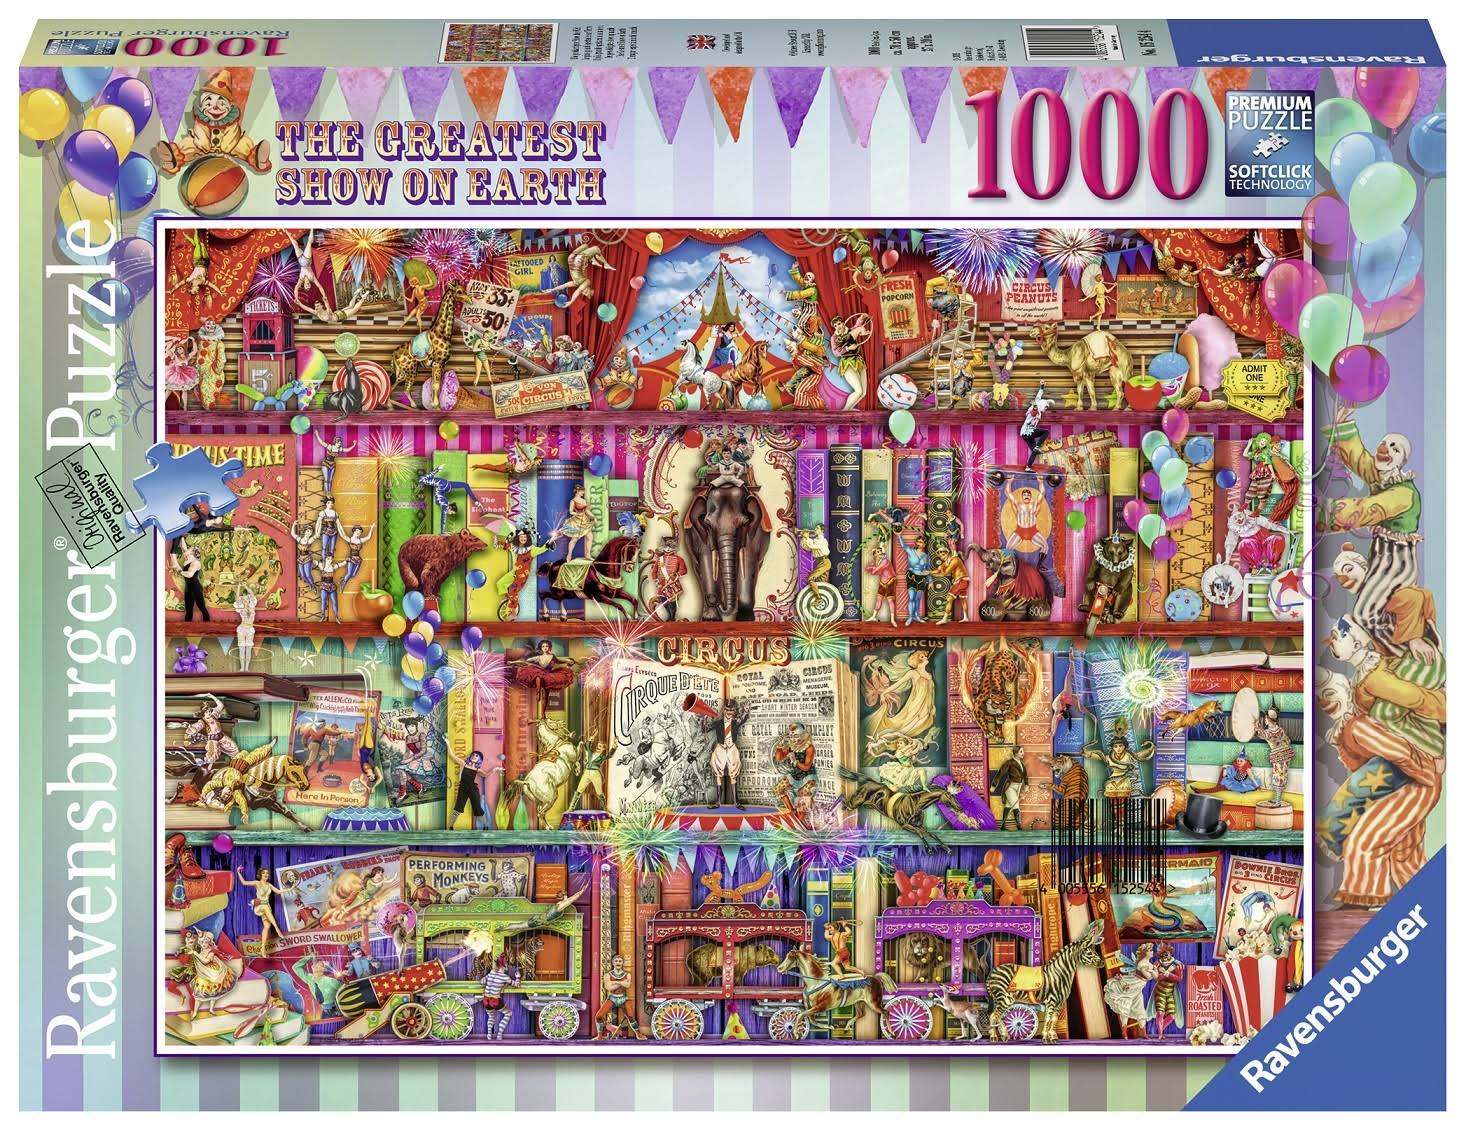 Ravensburger 15254 The Greatest Show on Earth Jigsaw Puzzle - 1000pcs